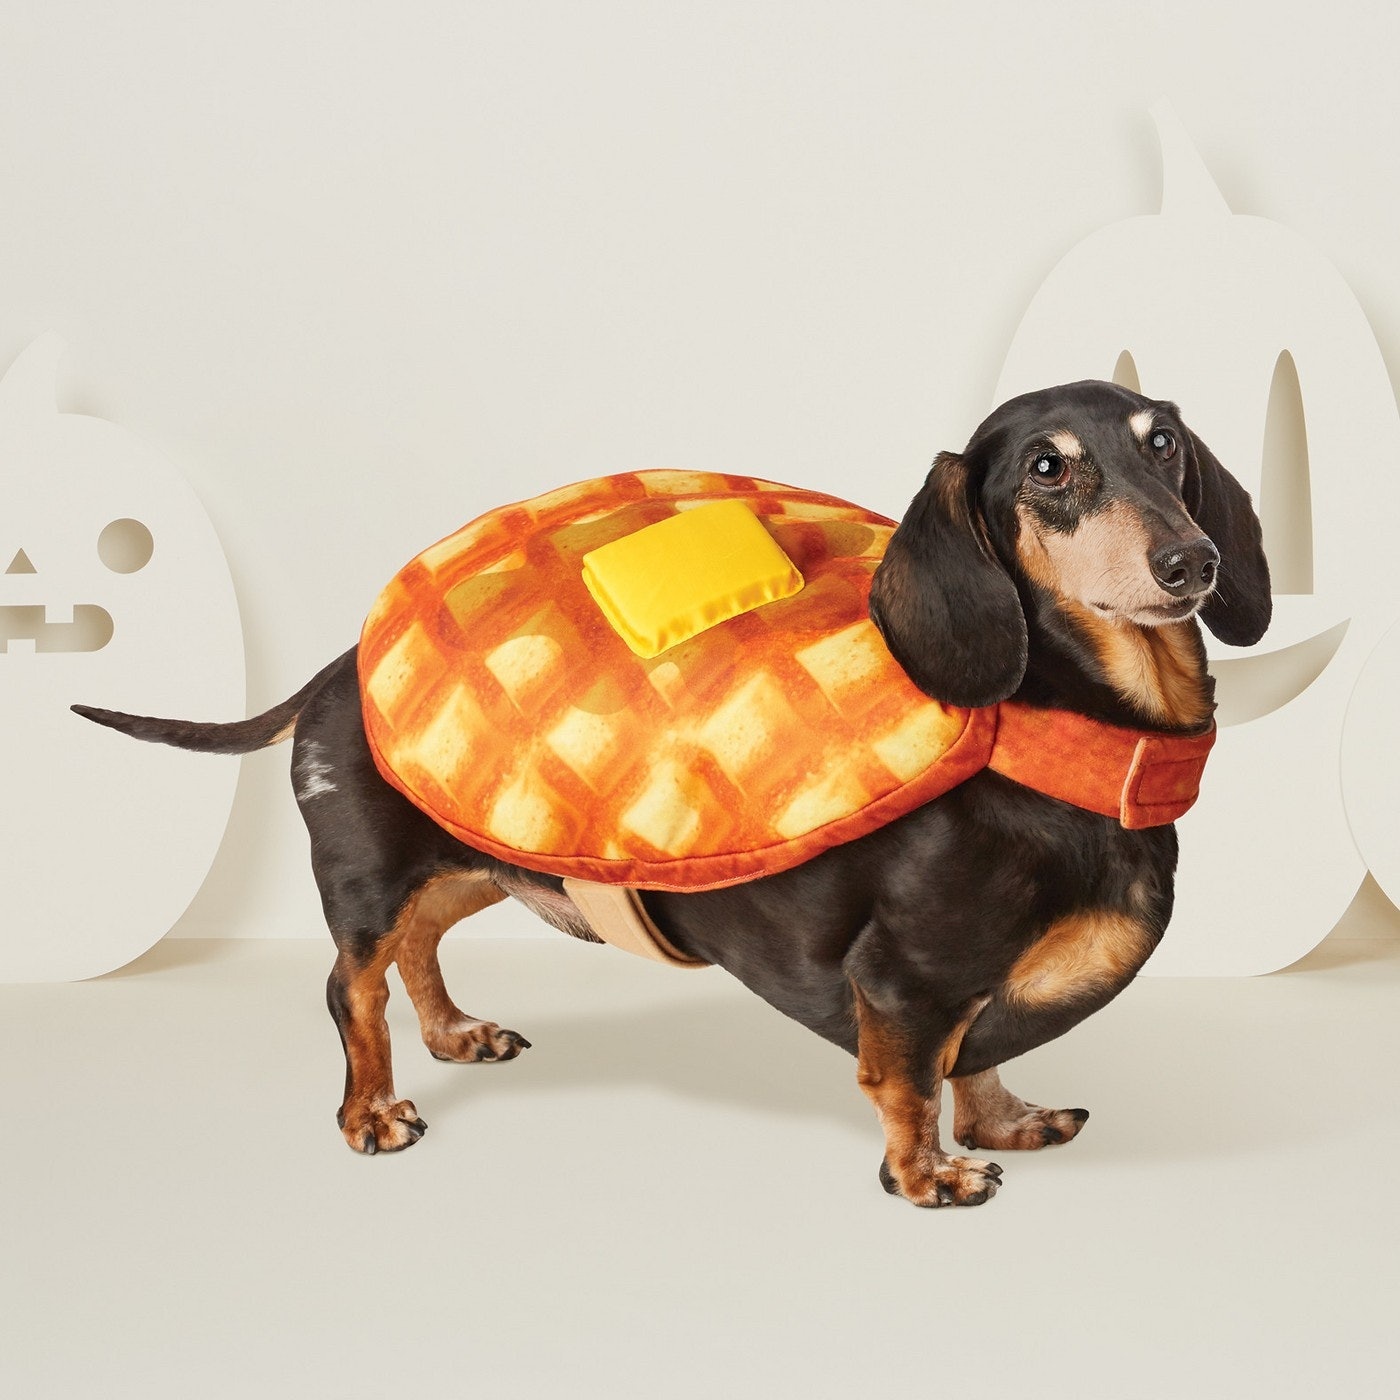 15 matching dog & owner halloween 2018 costumes that are just